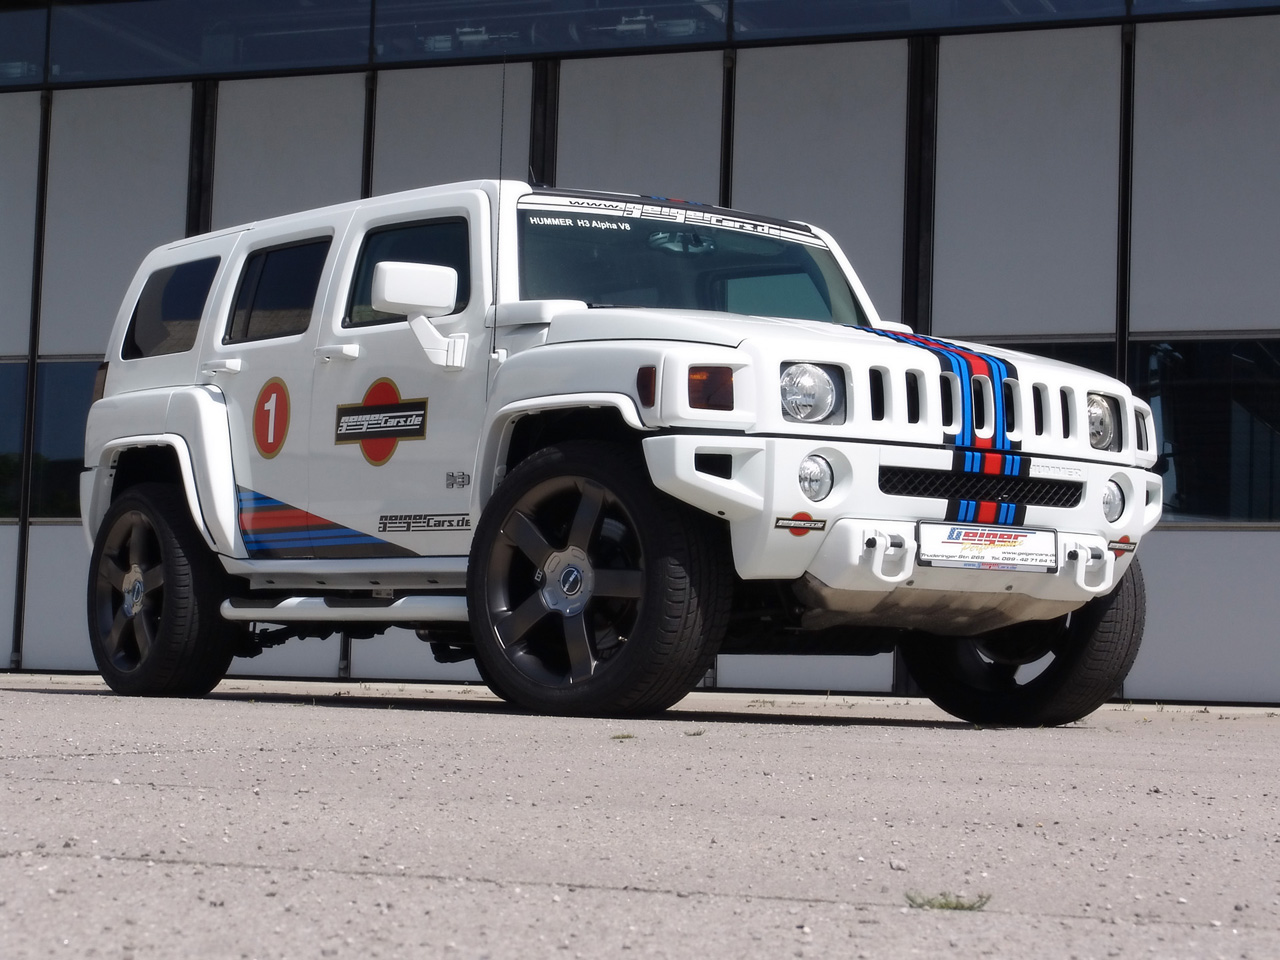 Hummer H3 Screensavers For Windows